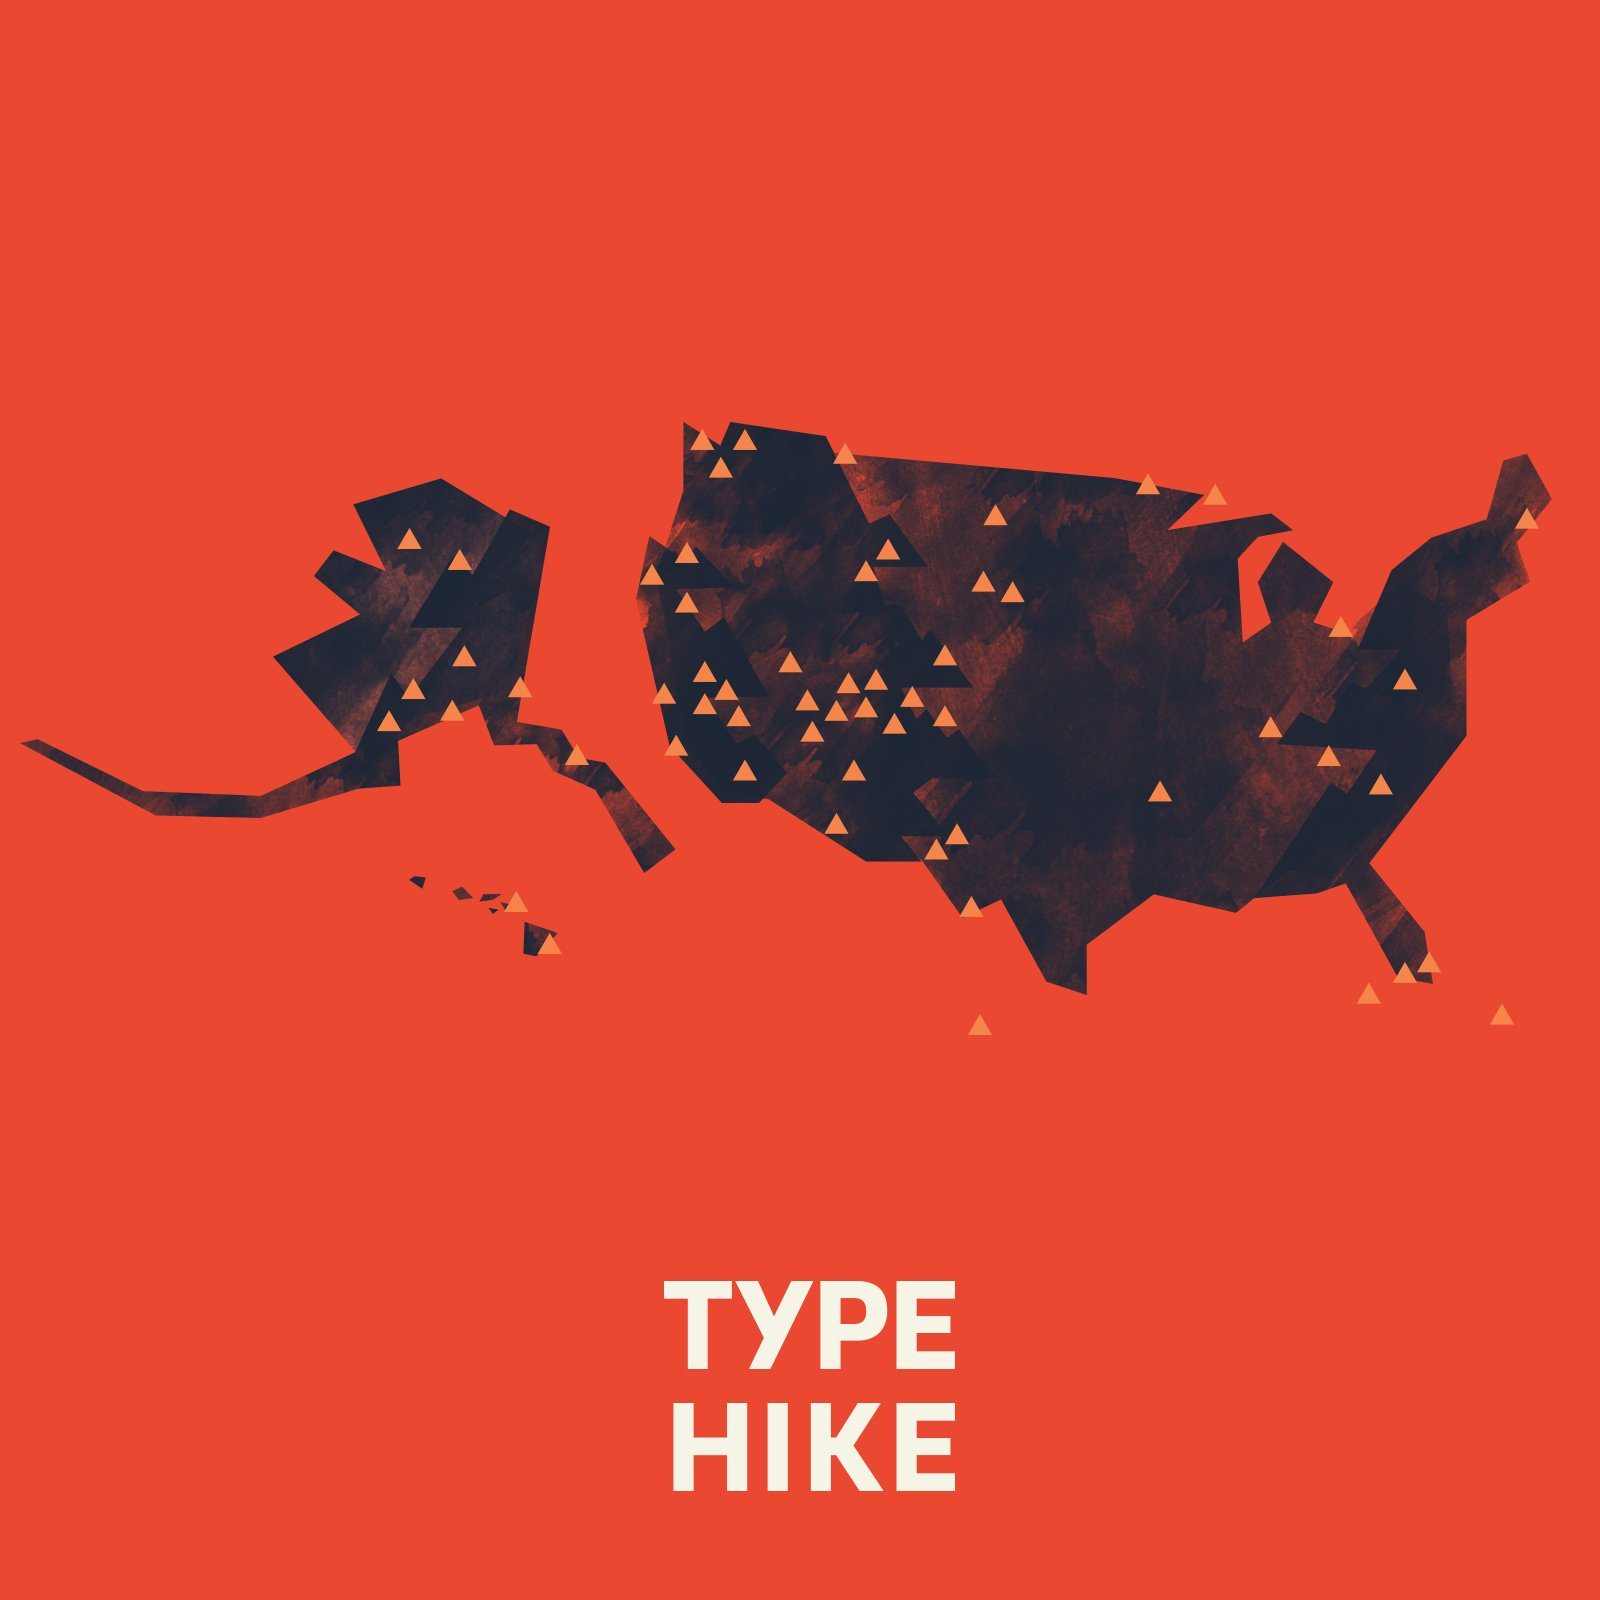 "To celebrate the centennial of the U.S. National Park Service, designers James Louis Walker and David Ryejol created the project Type Hike, in which they partnered with 59 designers, letterers, type designers, and studios to each create a custom typography-based graphic for one of the nation's parks. They were given some basic guidelines such as color, size, and a request to focus on the park name itself. Most of the type is hand-drawn by the designers.  ""When we conceived the project we were looking for an outlet to use design as a positive response to the negative, divisive mood swing our country is currently experiencing,"" Ryejol and Walker said in a statement. ""We have always strongly believed that as designers we are obligated to use our talents to make the word a more beautiful place, and celebrating our National Parks presented the perfect opportunity to do so. Looking forward with optimism to another great century for the park system is one of the main goals for the project.""  The designs will roll out at typehike.com as a series of print posters, shirts, and other apparel, with 100 percent of proceeds going directly to the National Park system.  With Type Hike, 59 Graphic Designers Celebrate the National Park Service Centennial"